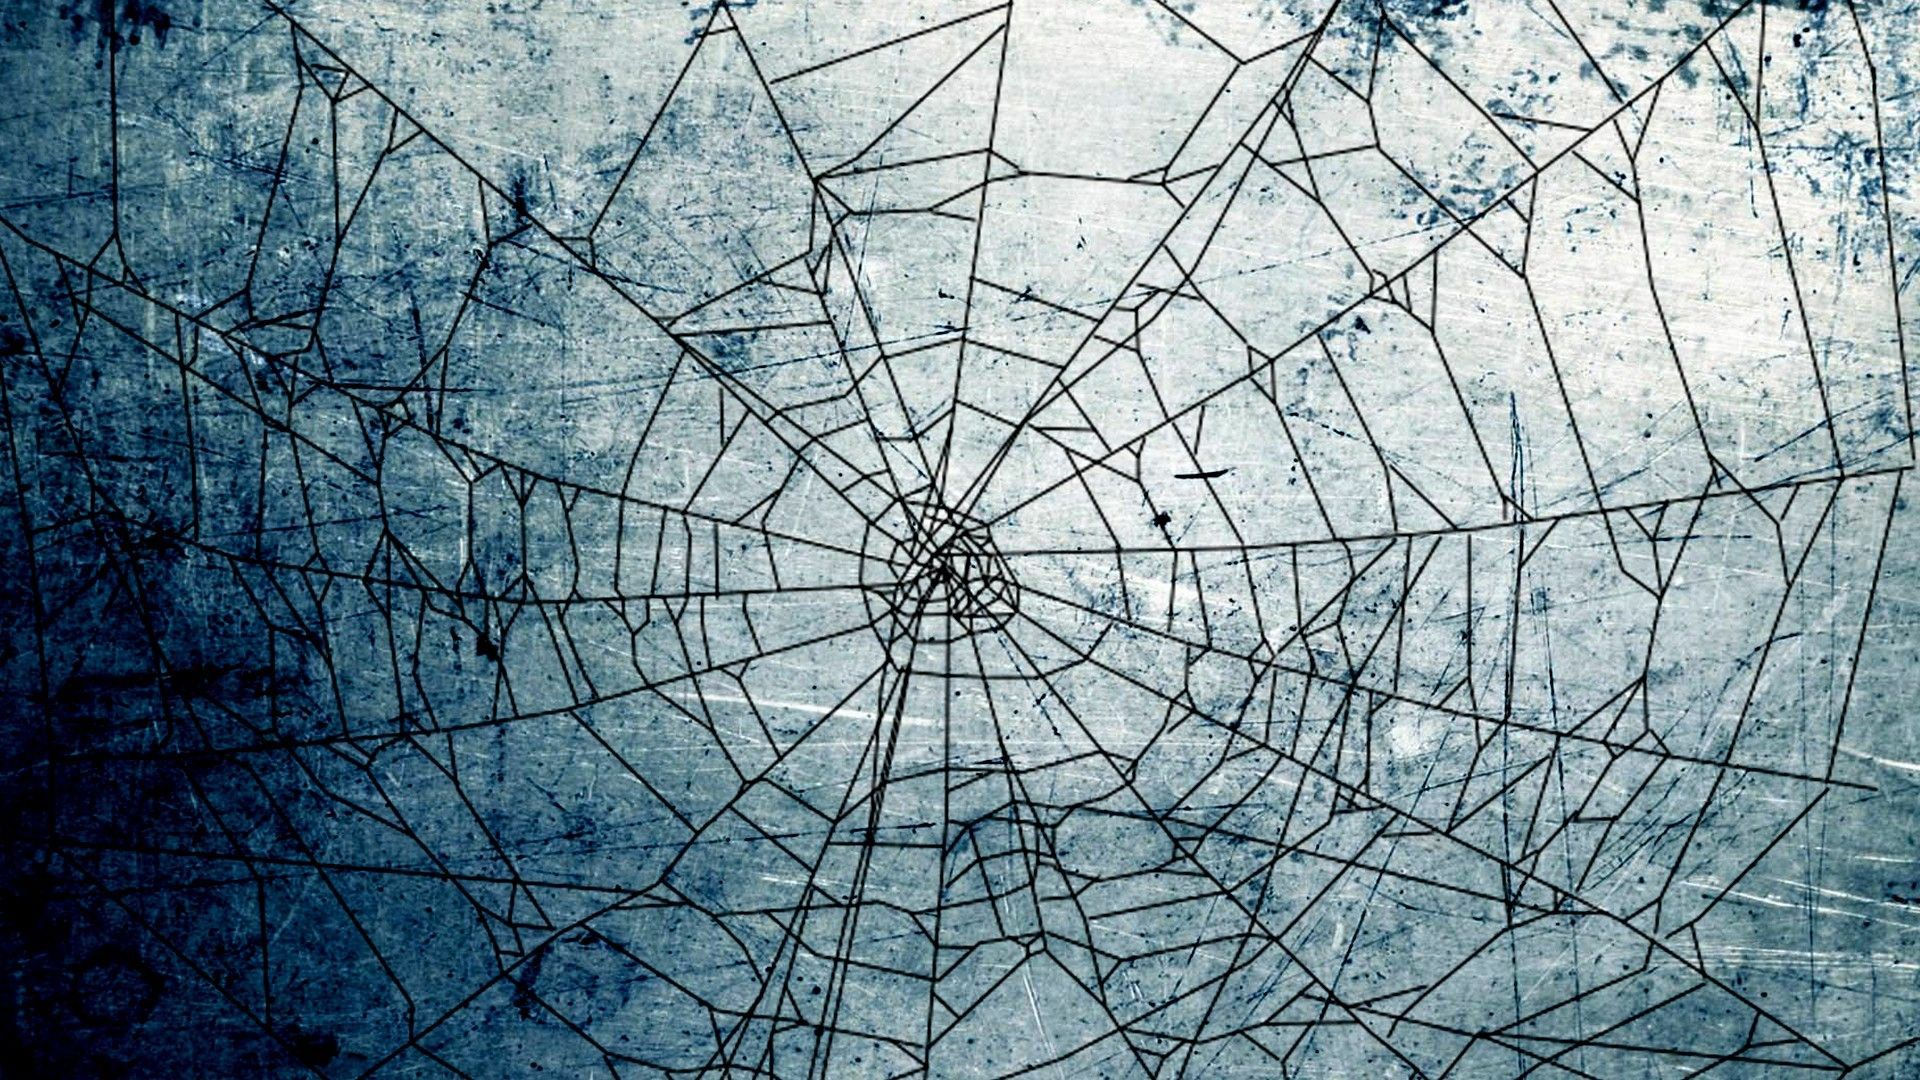 Spider Web Wallpapers 16 Best Free Spider Web Hd Wallpaper For Iphone Hd Wallpaper Iphone Amazing Hd Wallpapers Hd Wallpaper